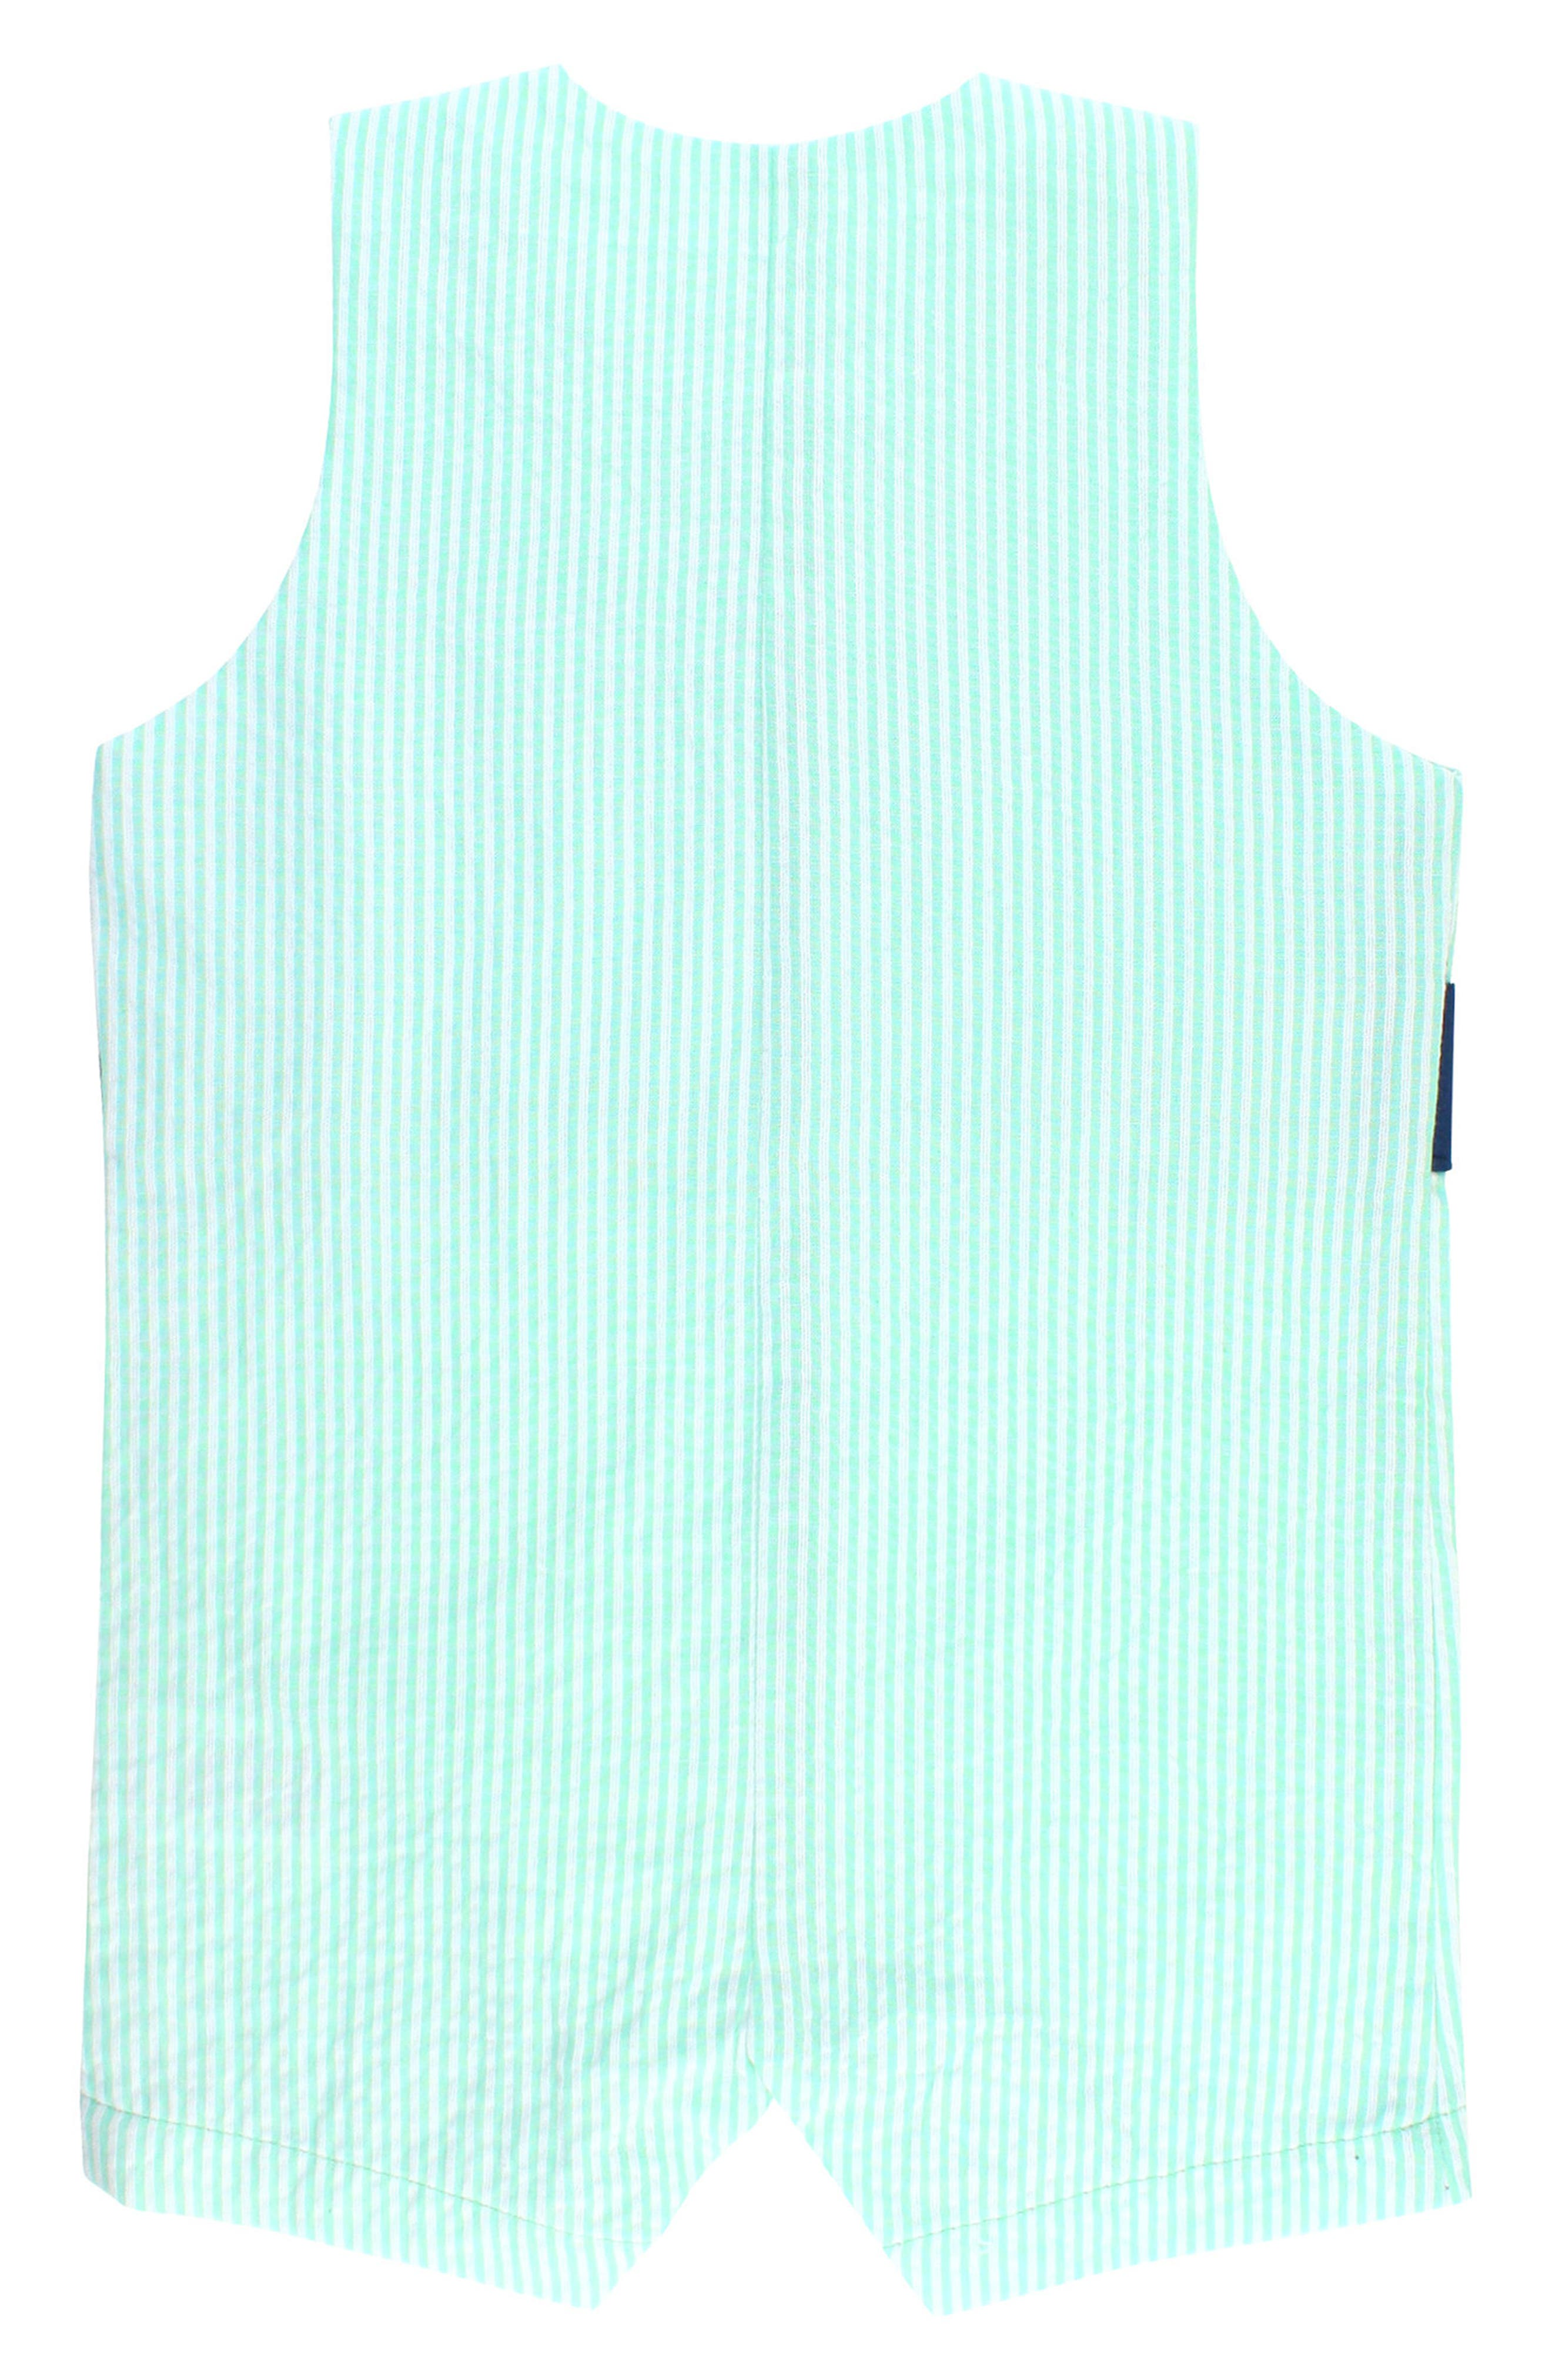 Seersucker Stripe Overalls,                             Alternate thumbnail 2, color,                             MINT